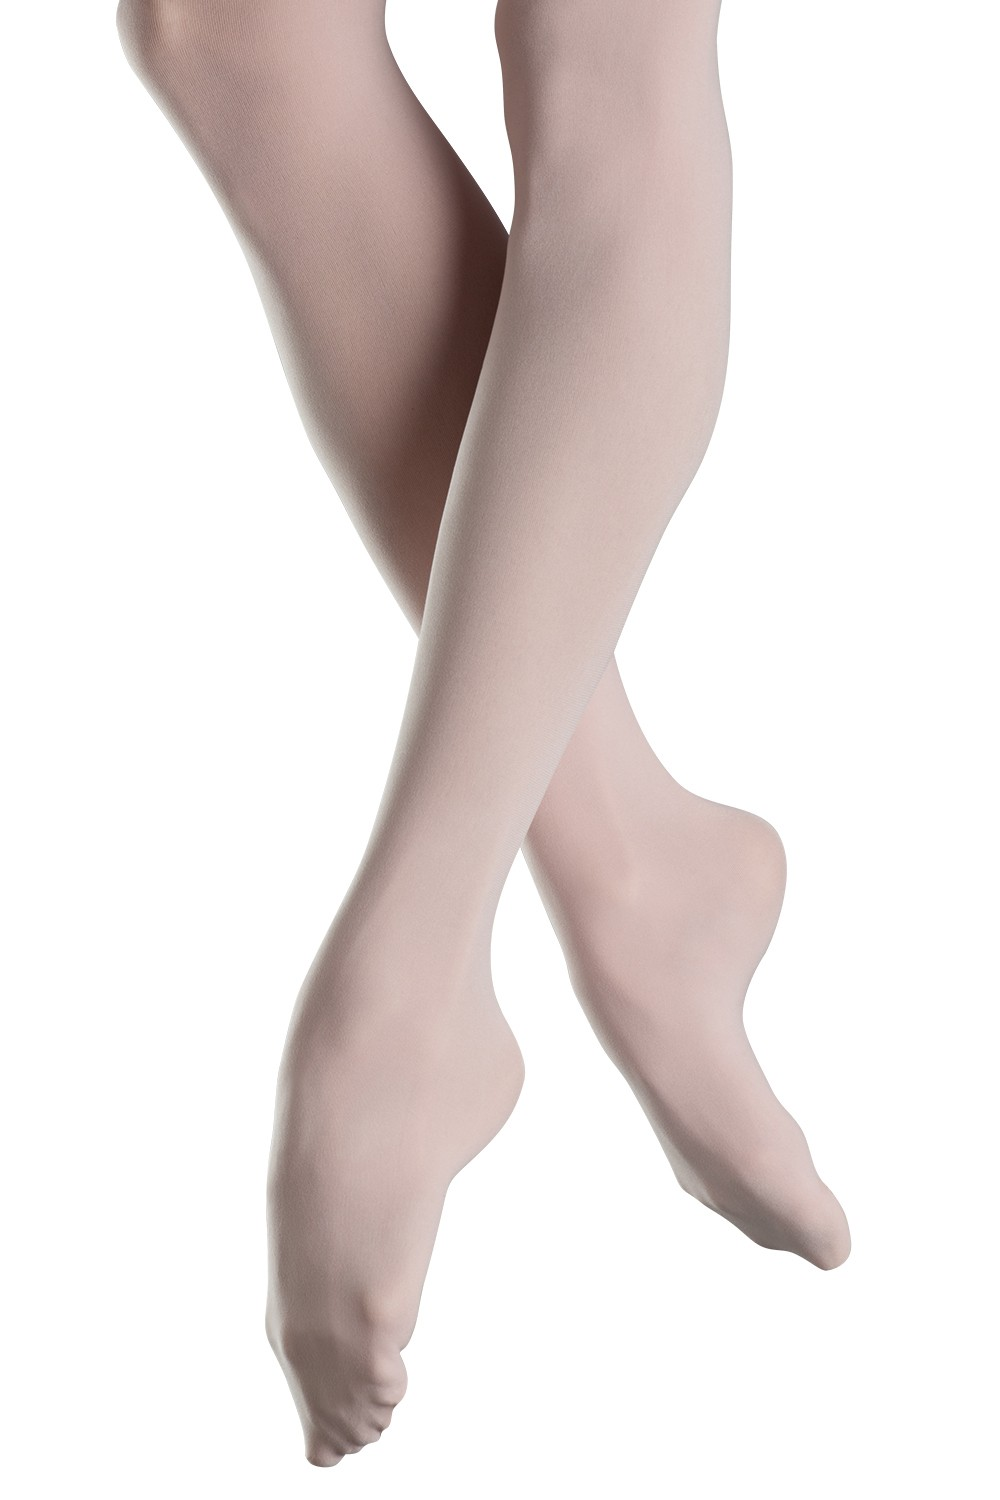 Collant Femme Endura Hipstar Avec Pieds Women's Dance Tights